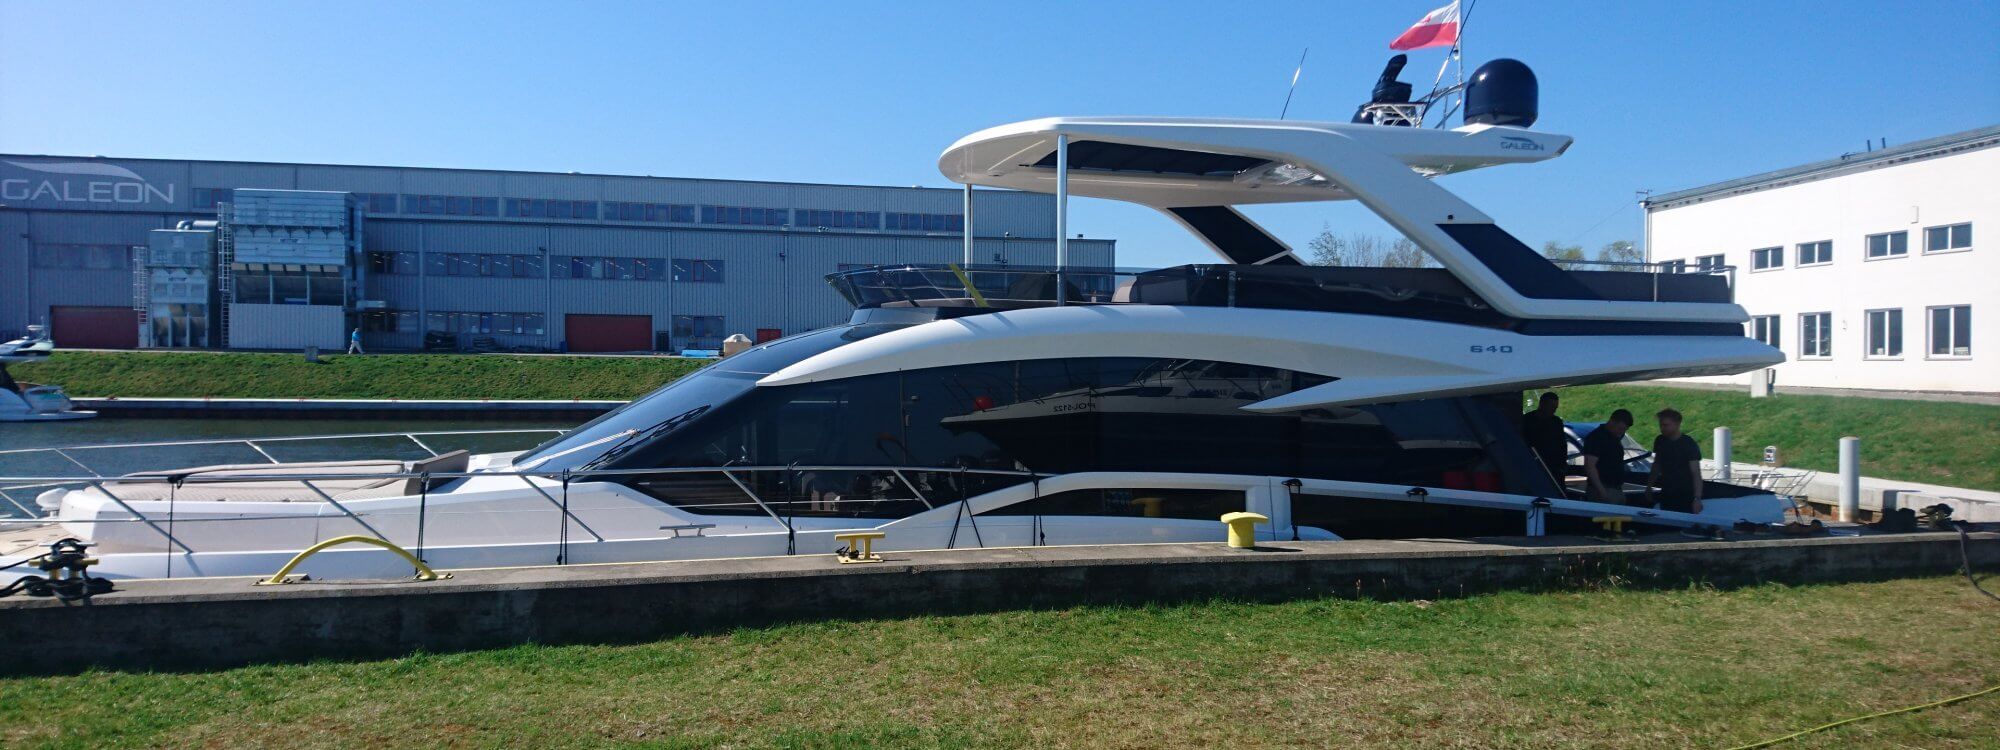 Crestapol<sup>®</sup> 1261 resin delivers exceptional strength & weight saving to the Galeon 640 FLY yacht